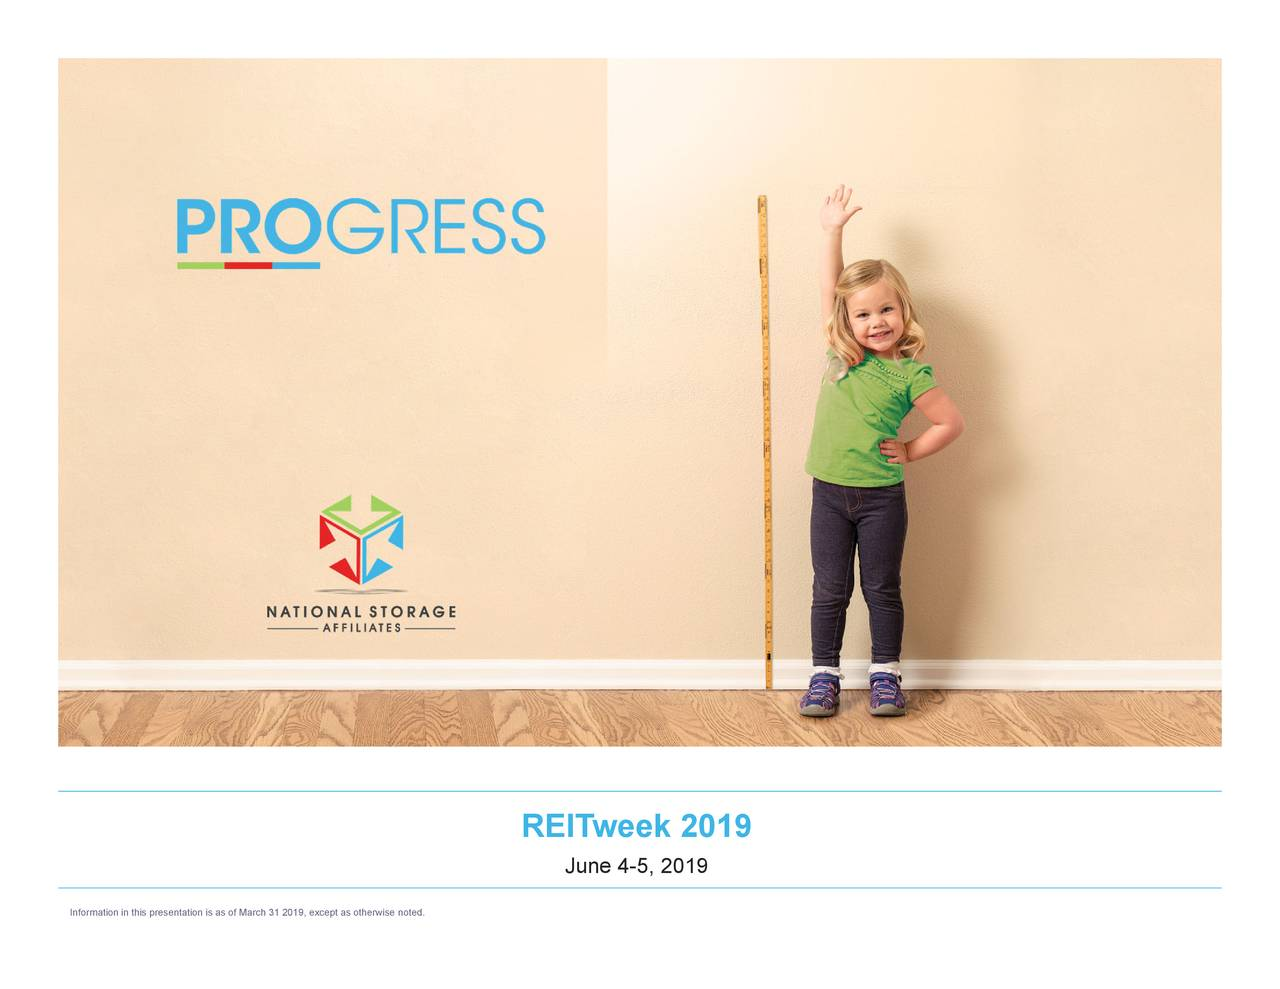 REITweek 2019 Information in this presentation is as of March 31 2019, except as otherwise noted.